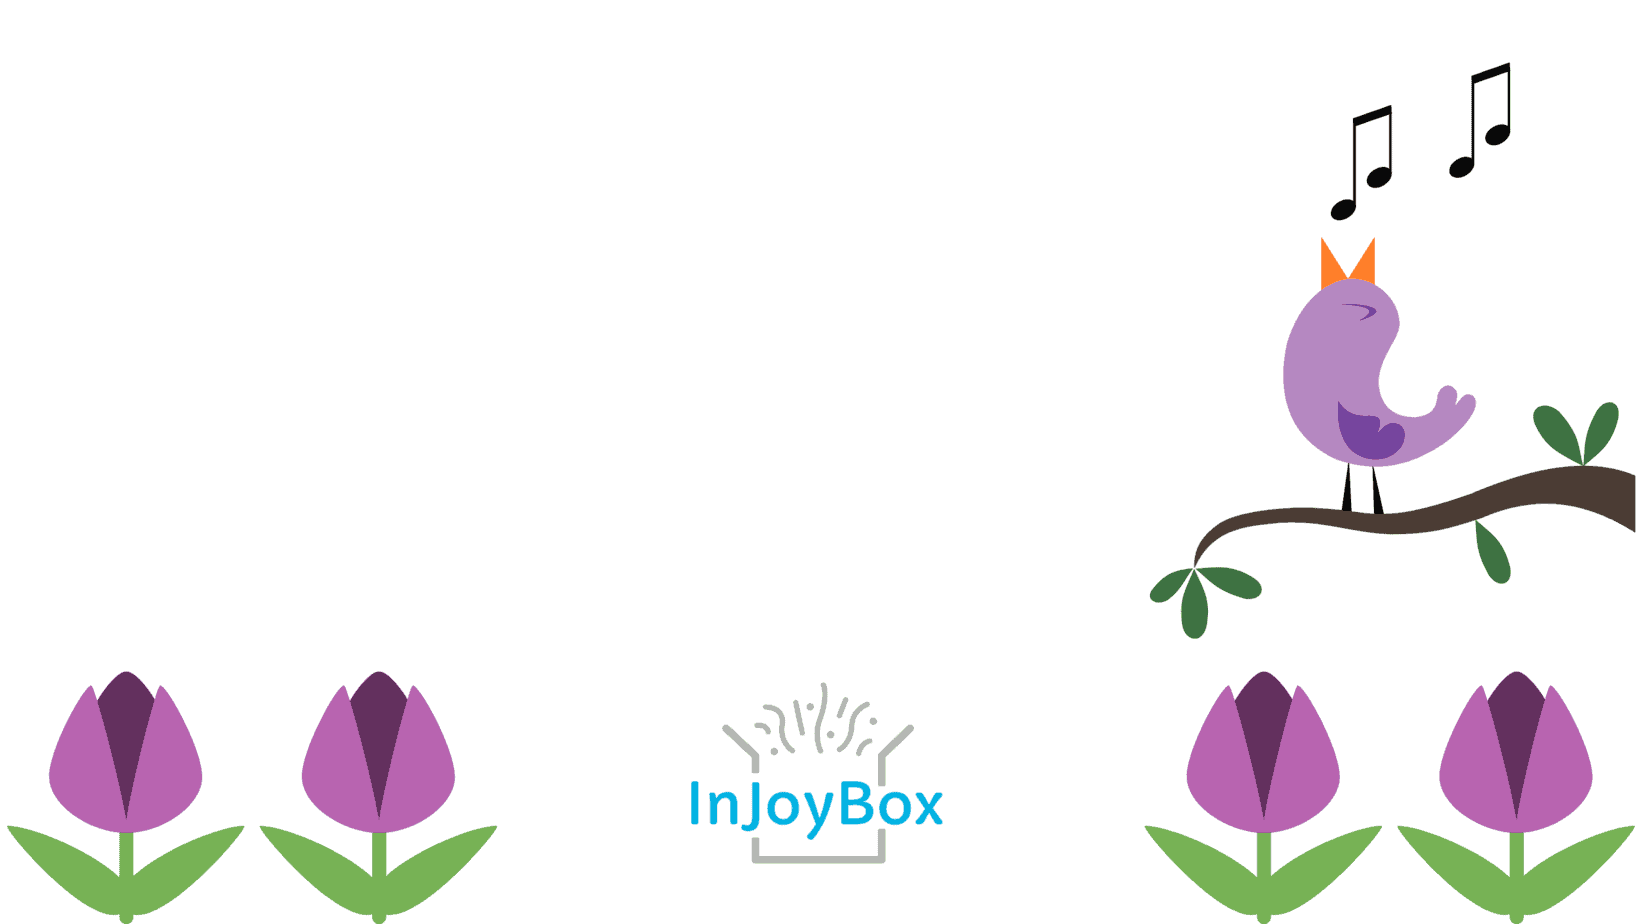 April InJoyBox For Her